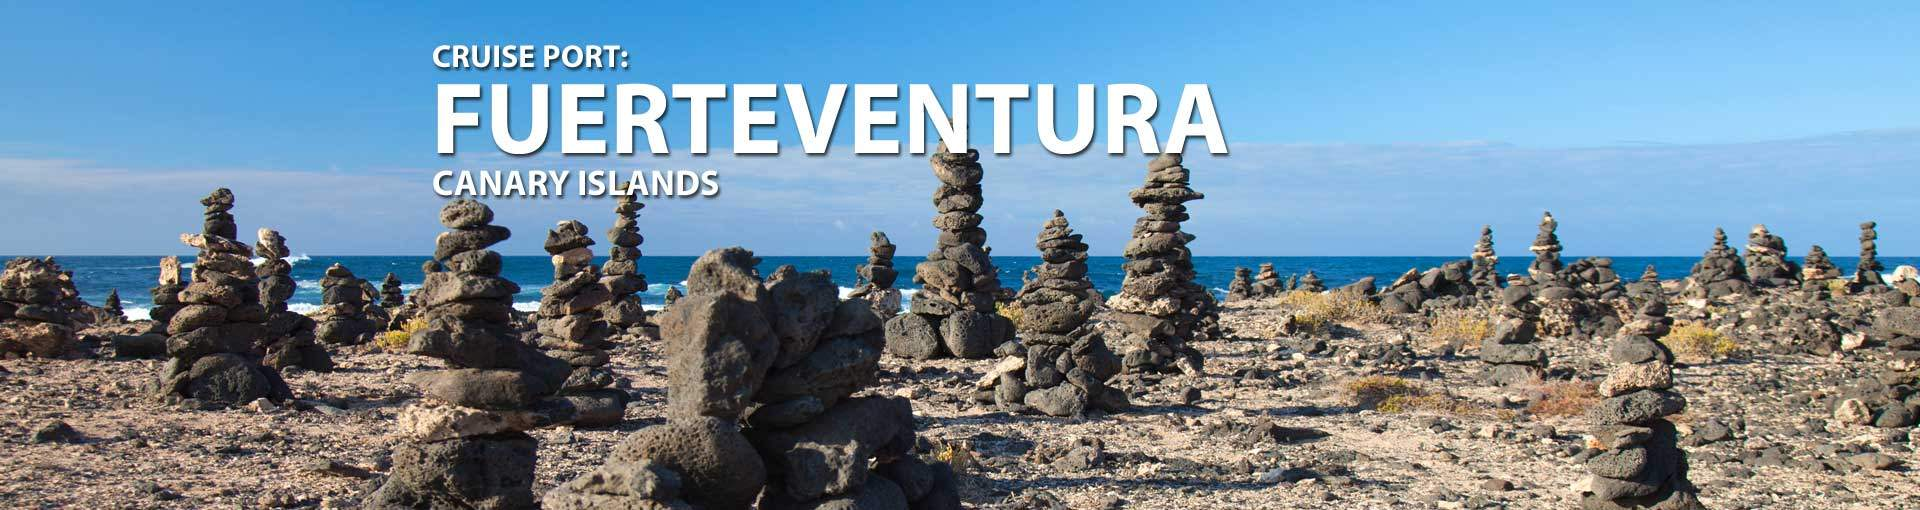 Cruises to Fuerteventura, Canary Islands